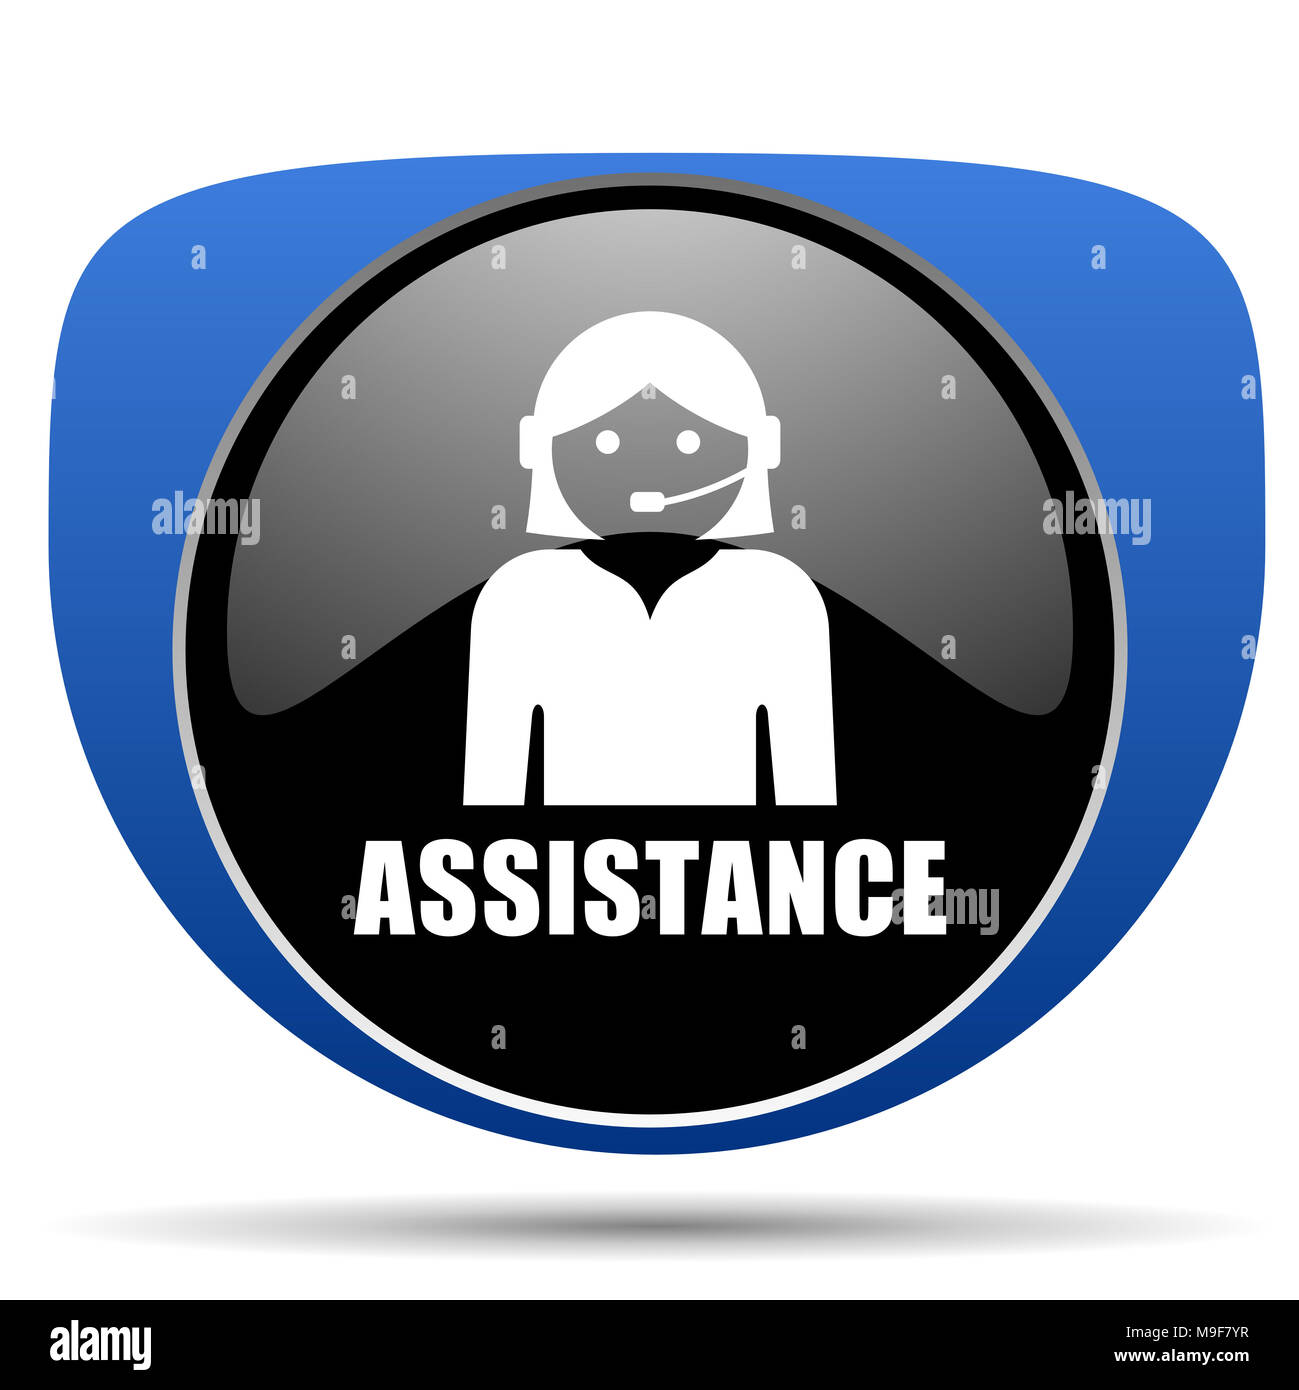 Assistance web icon Stock Photo